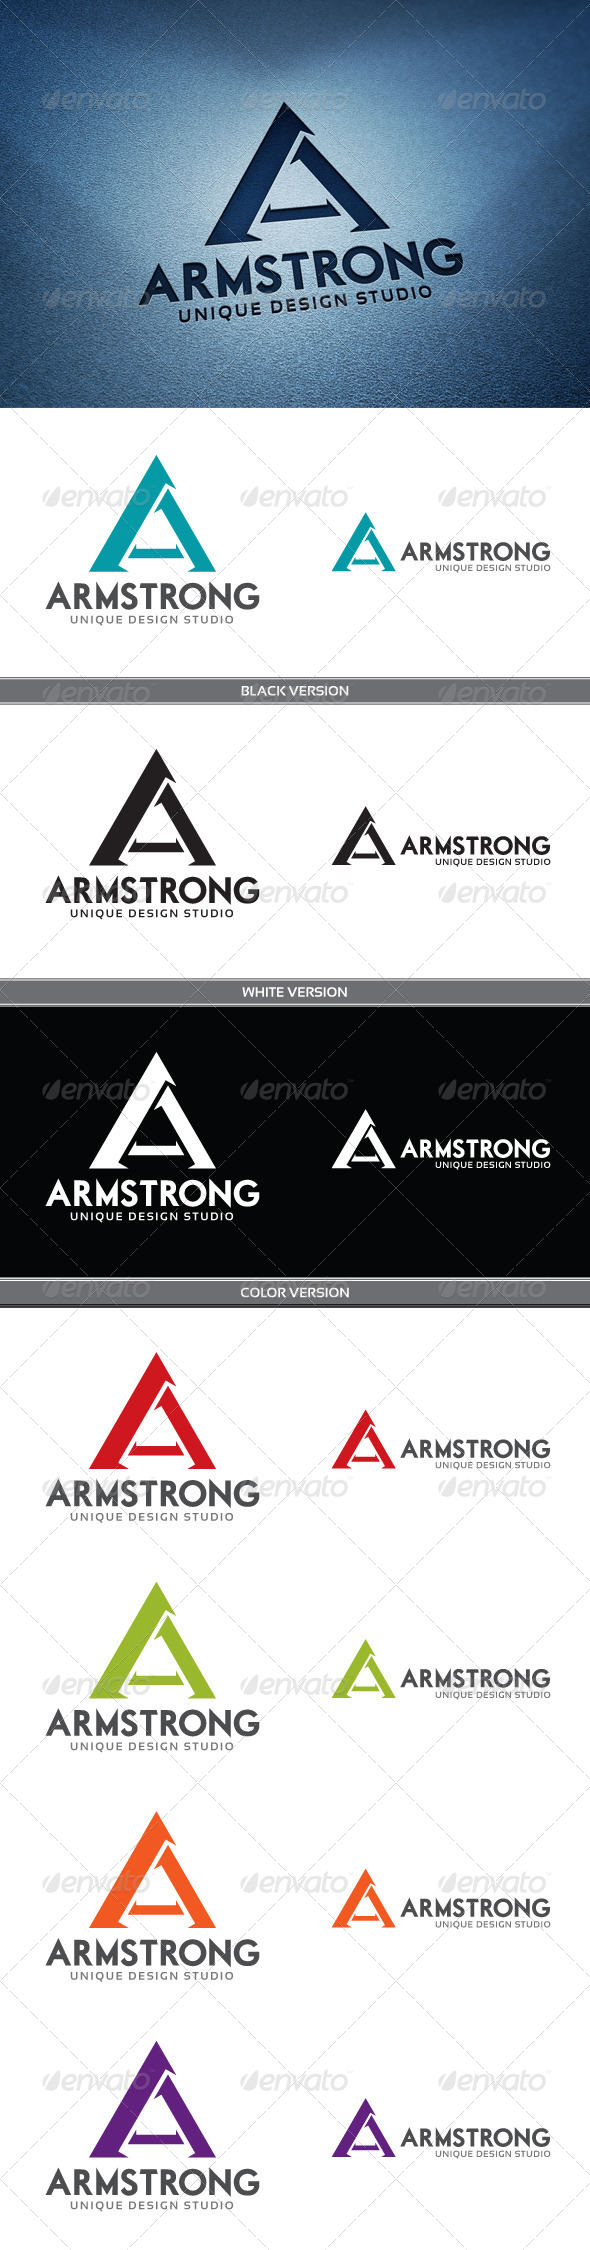 GraphicRiver Armstrong 3888216